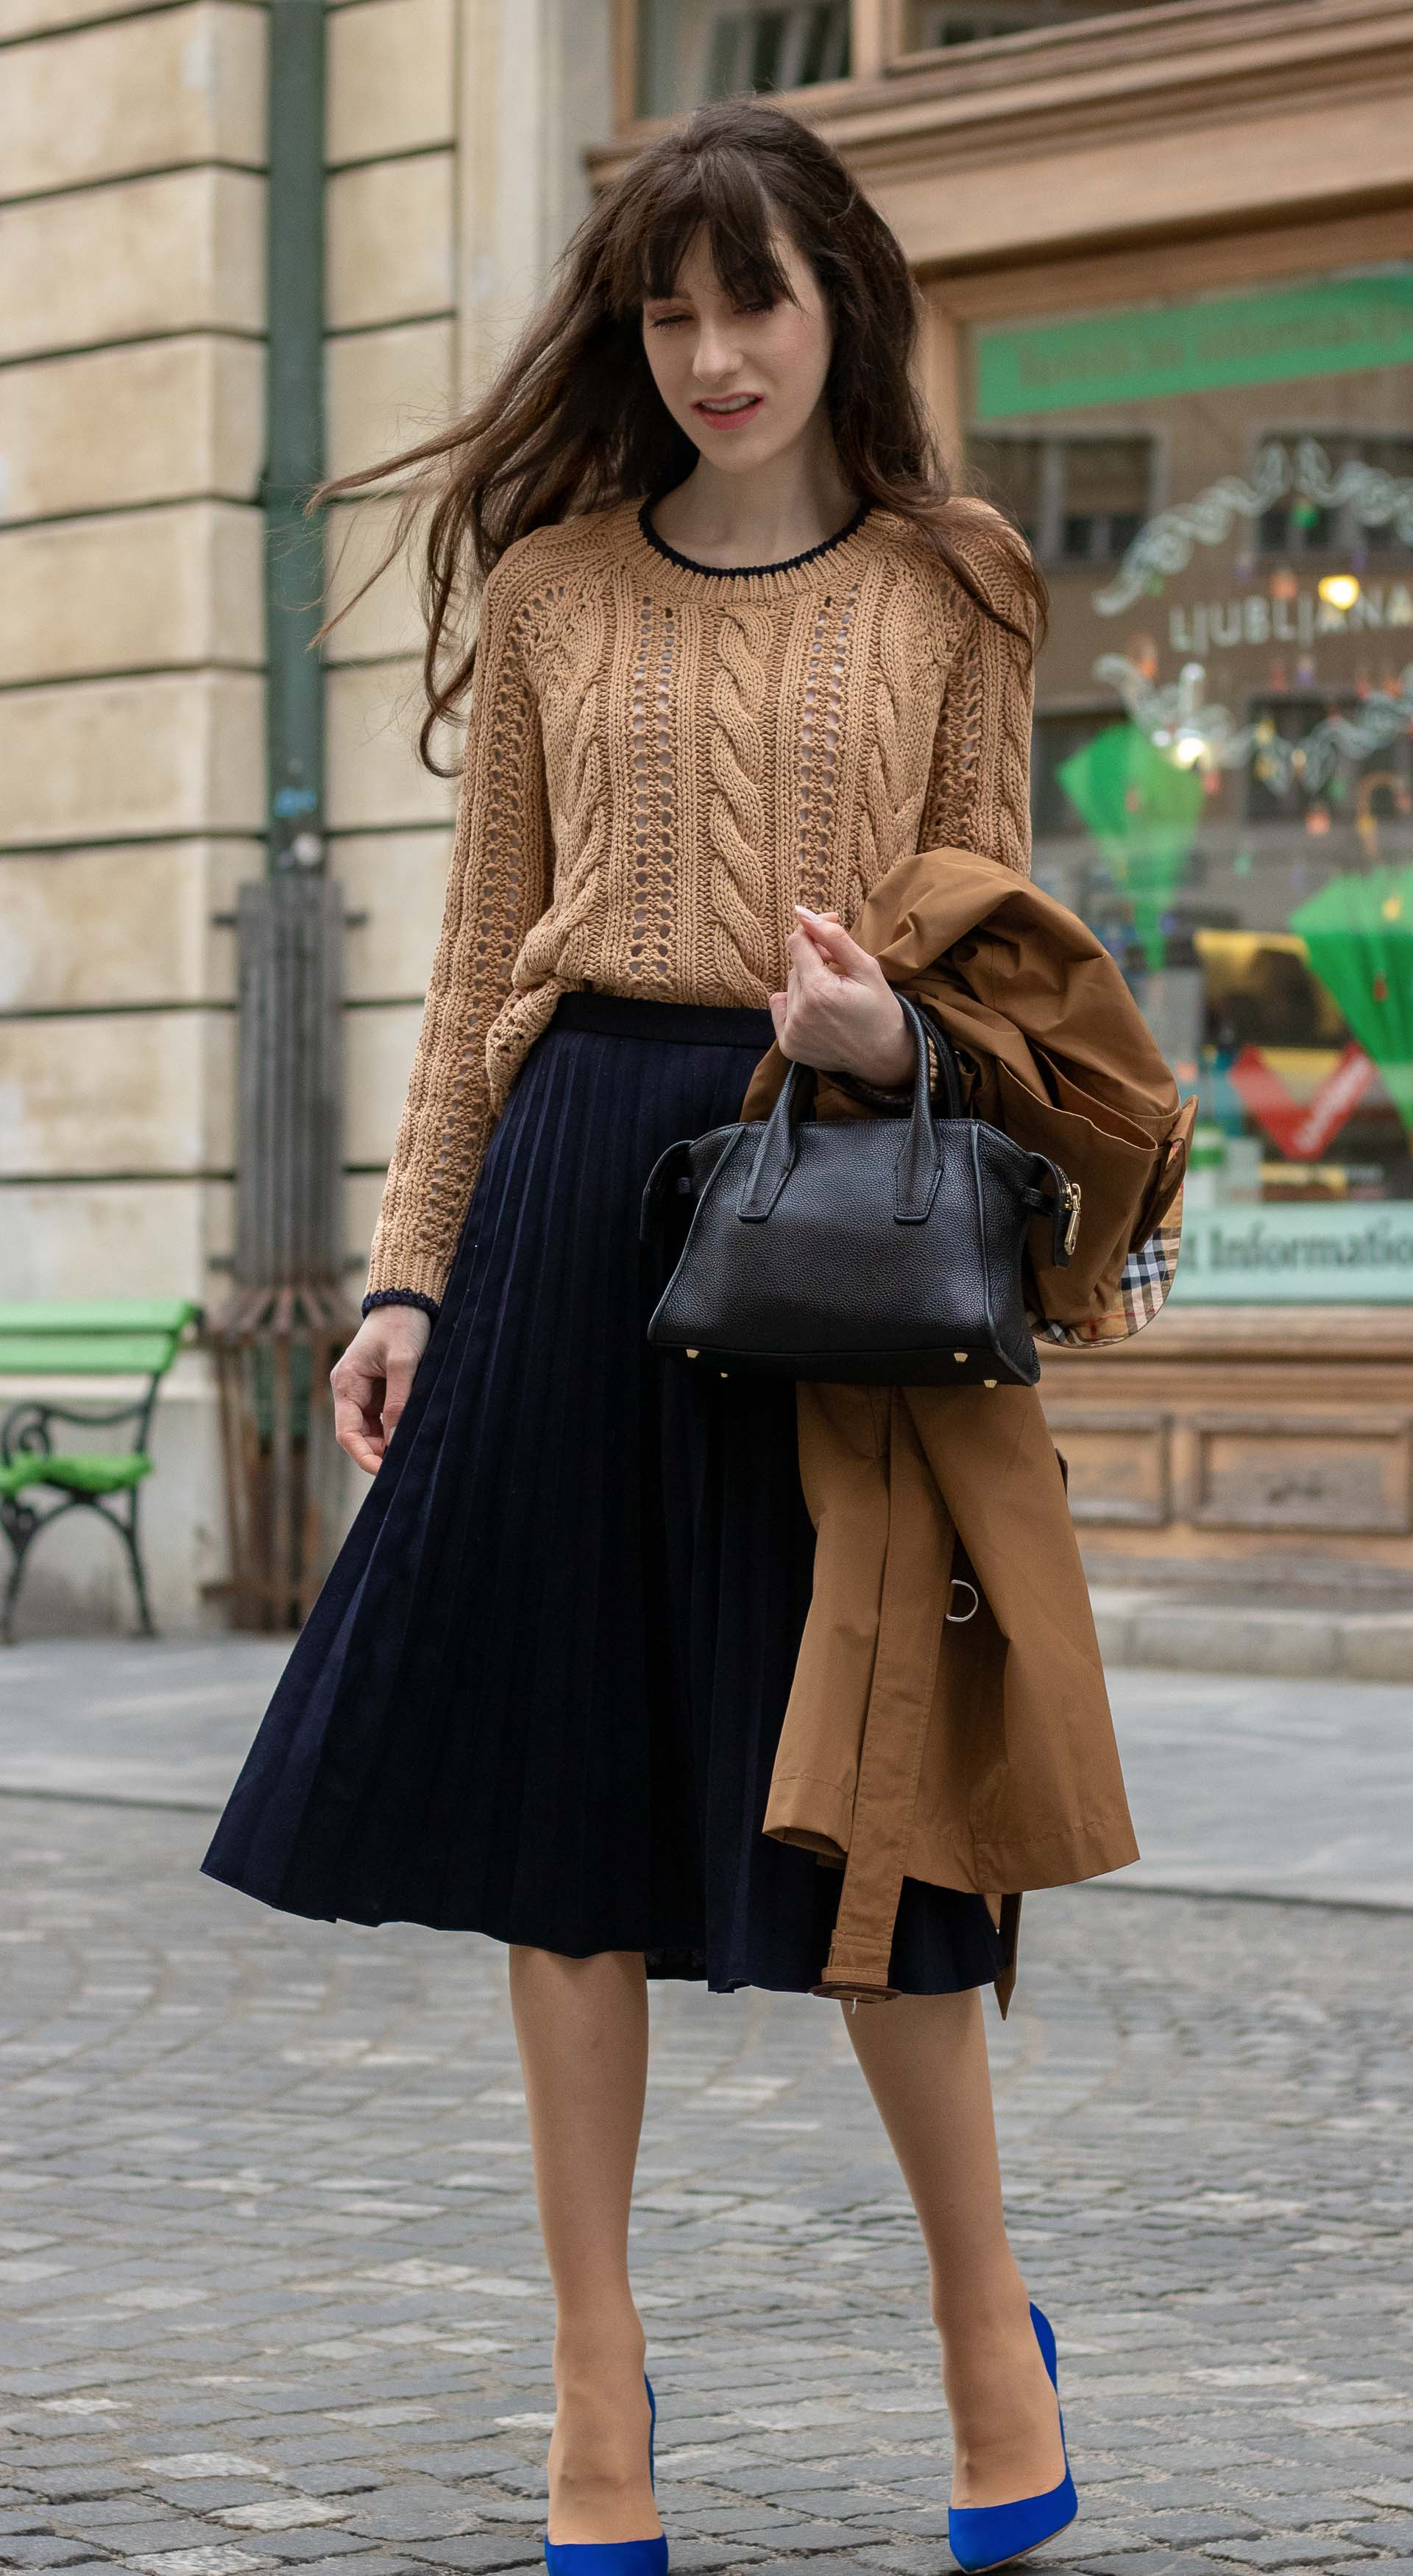 Must follow fashion blogger Veronika Lipar of Brunette from Wall Street wearing Mango cable knit camel sweater blue pleated midi skirt blue Gianvito Rossi pumps black top handle bag bangs on long hair holding camel beige Burberry Kensington trench coat in her hand standing on the street